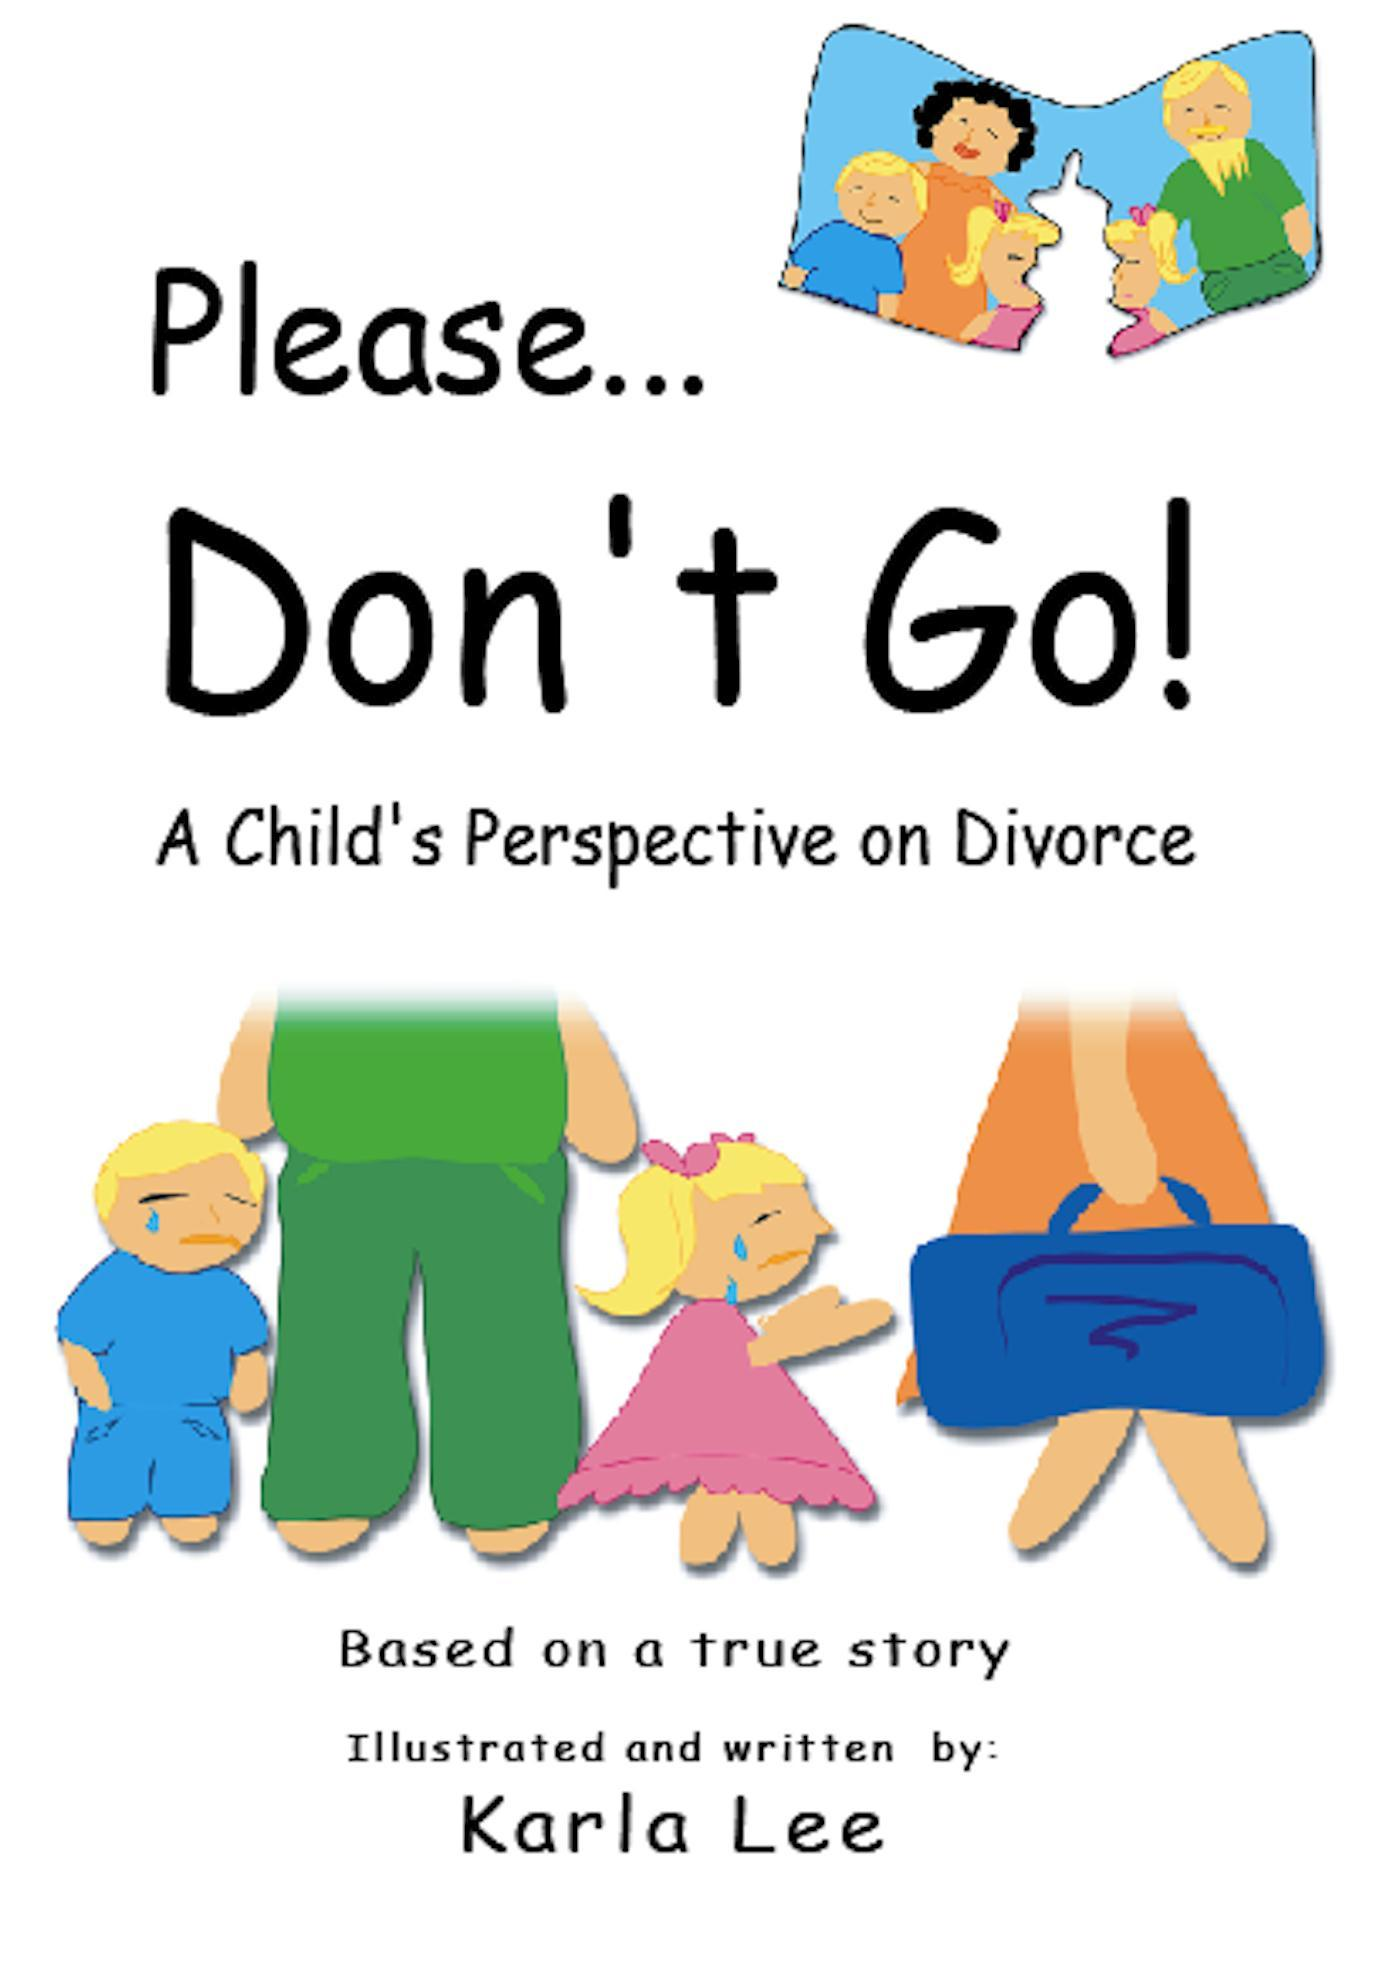 Please. Don't Go! A Child's Perspective on Divorce